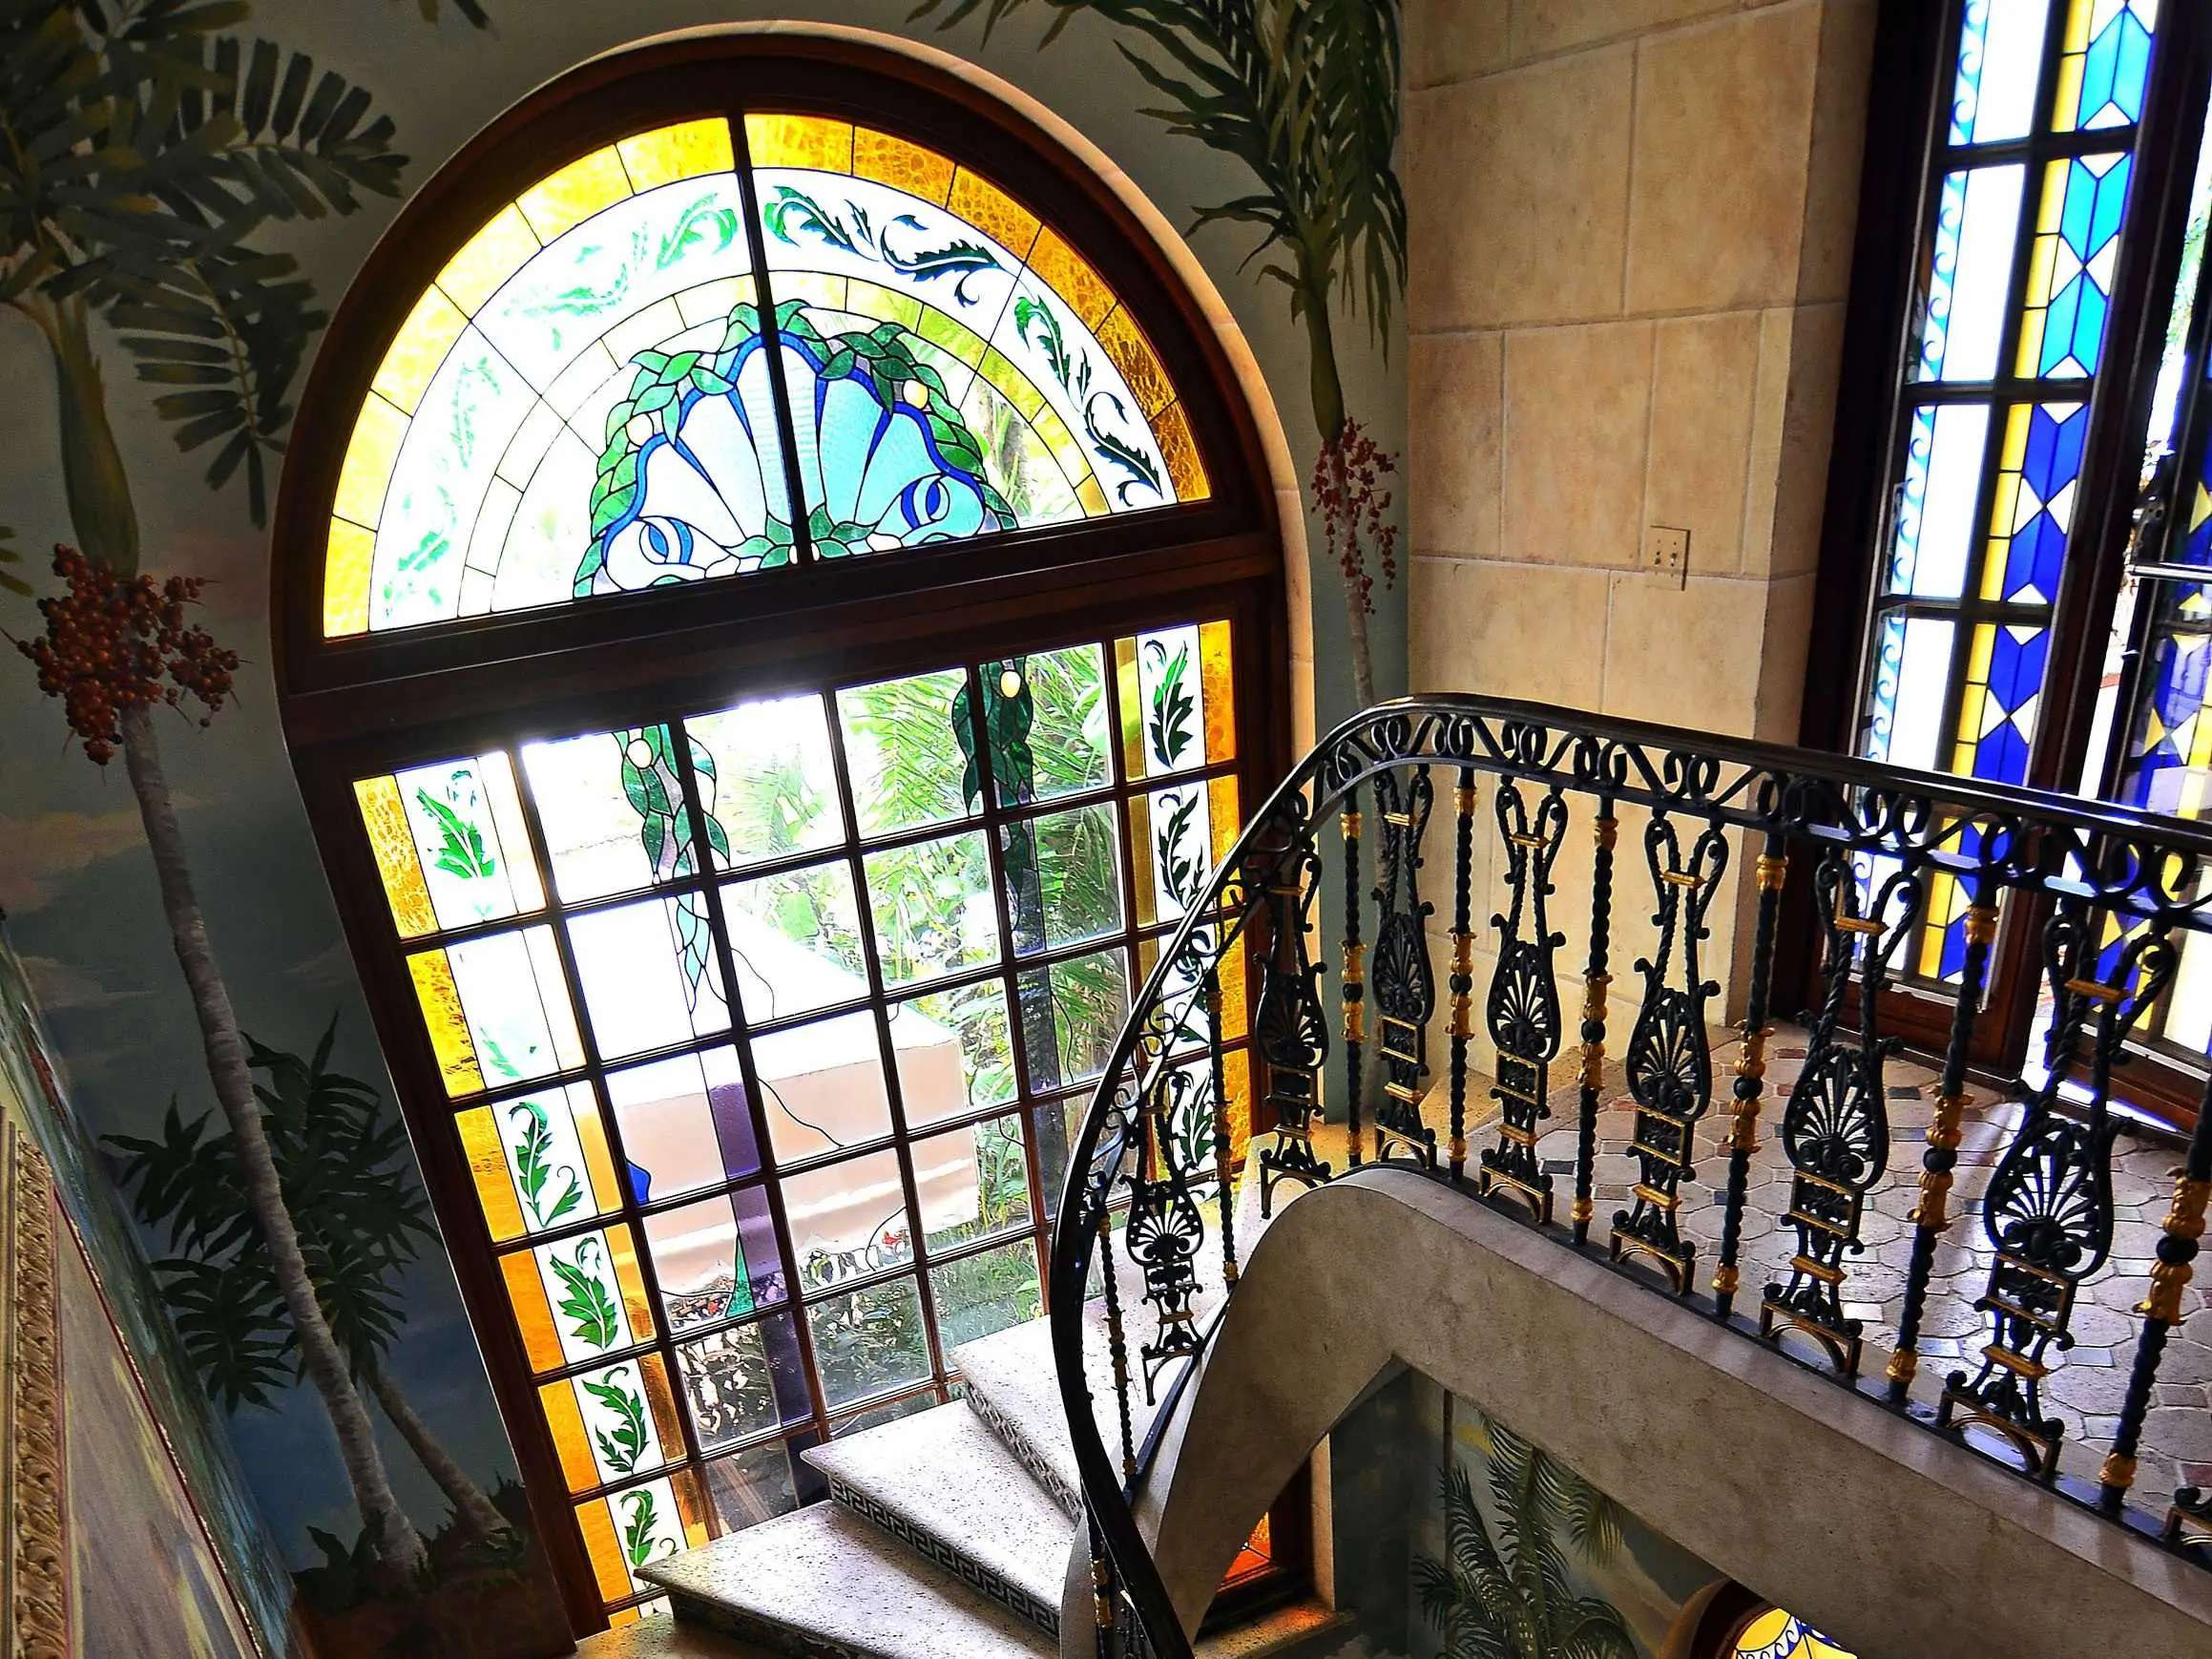 There are plenty of opulent details throughout the home, like these stained glass windows, wall frescoes, and intricate staircase railing.